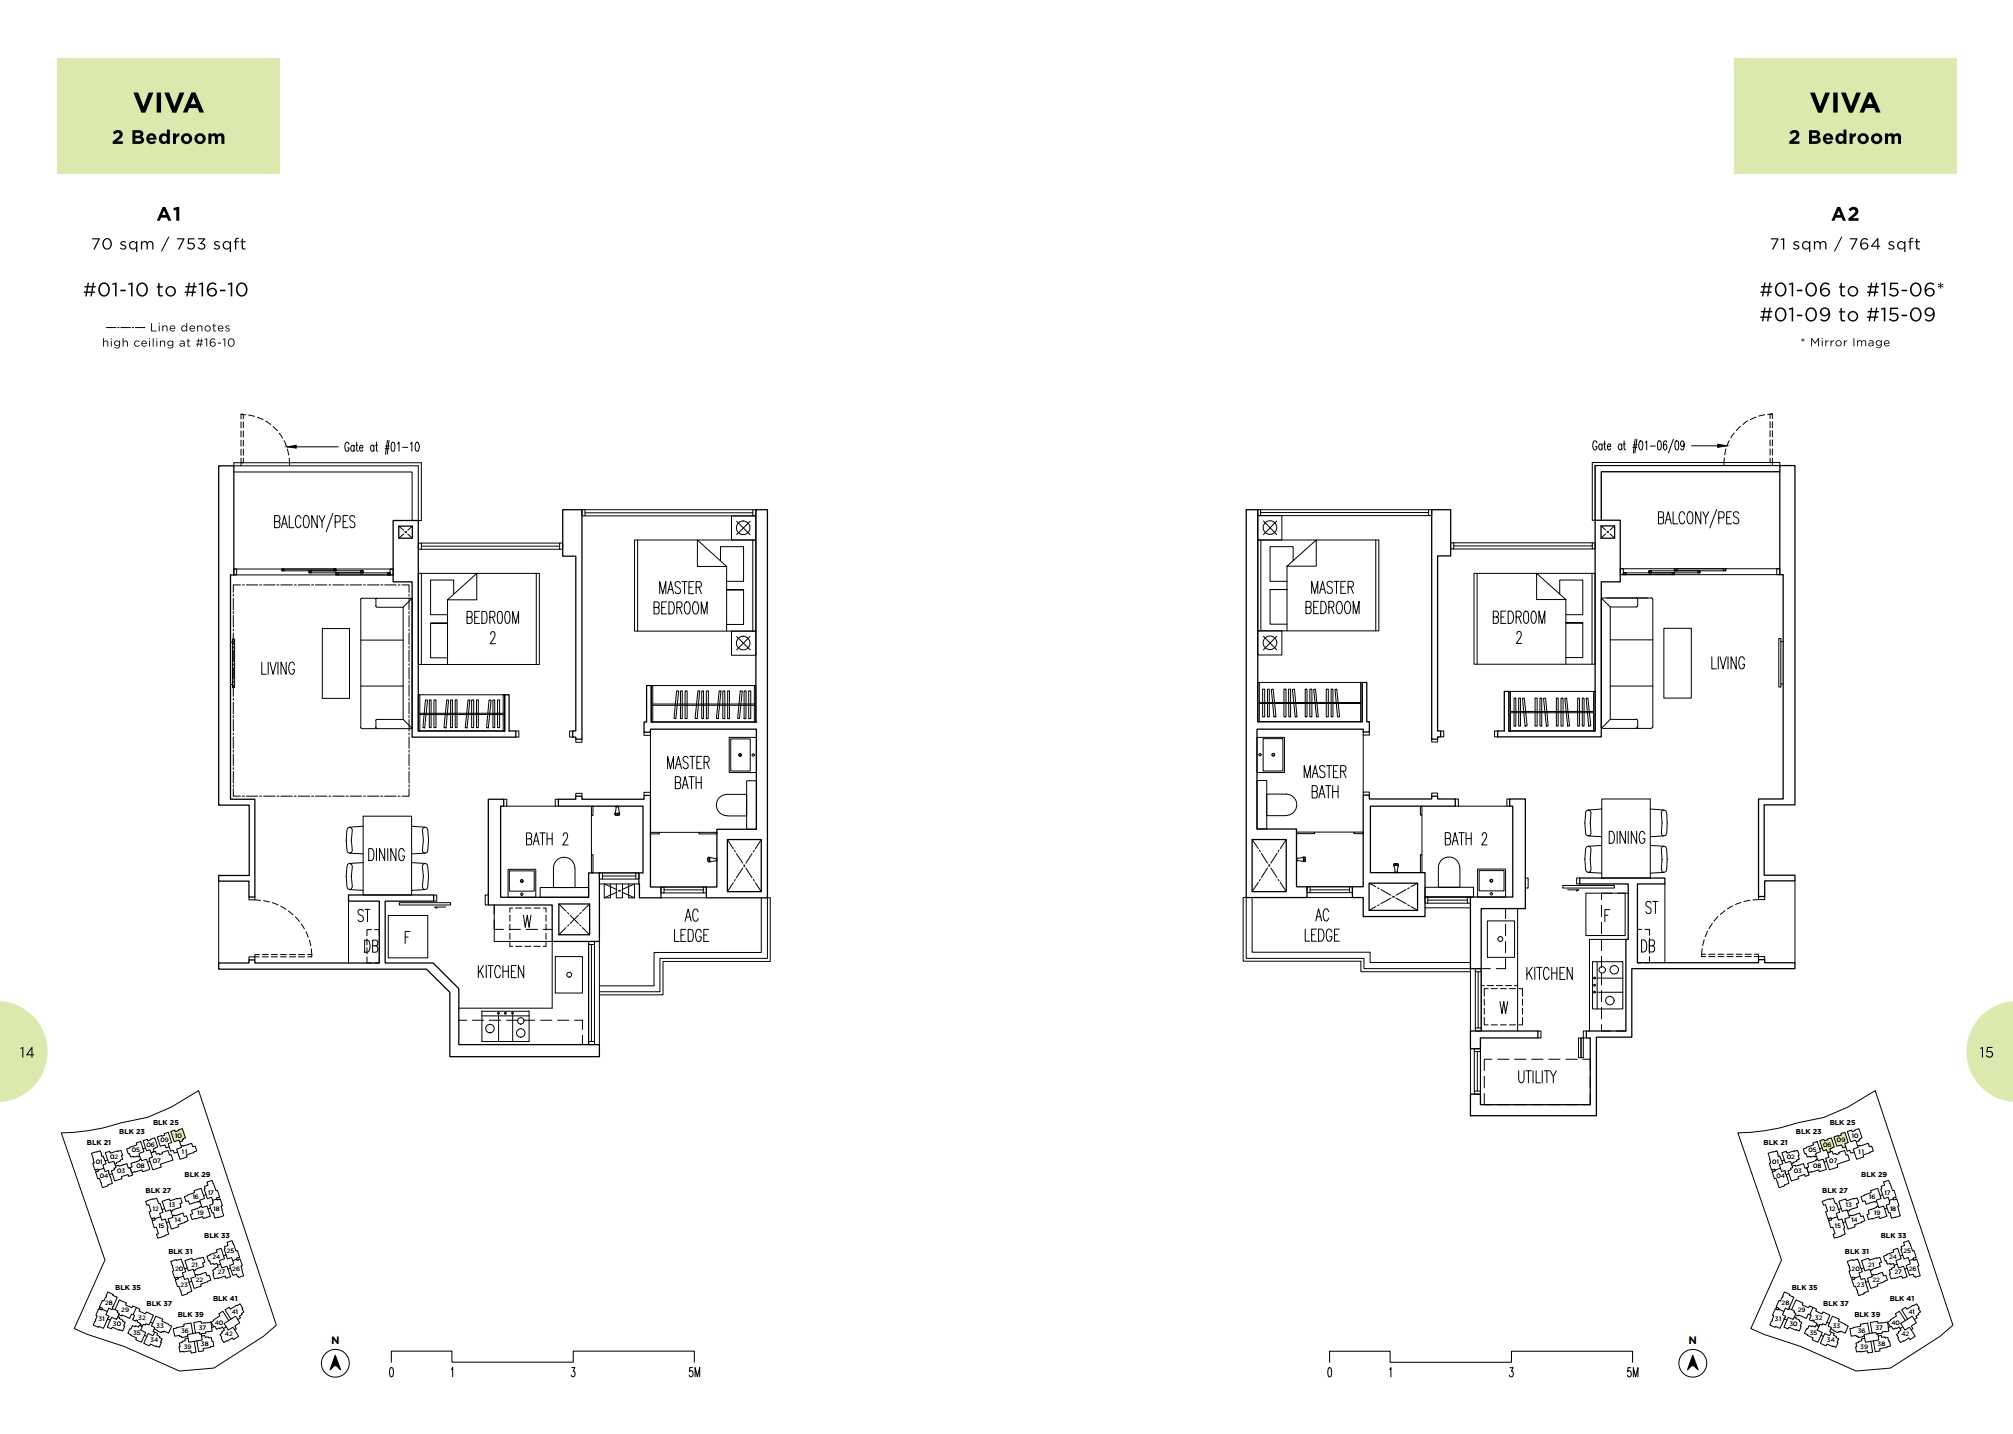 Parc Life FloorPlan A1 and A2